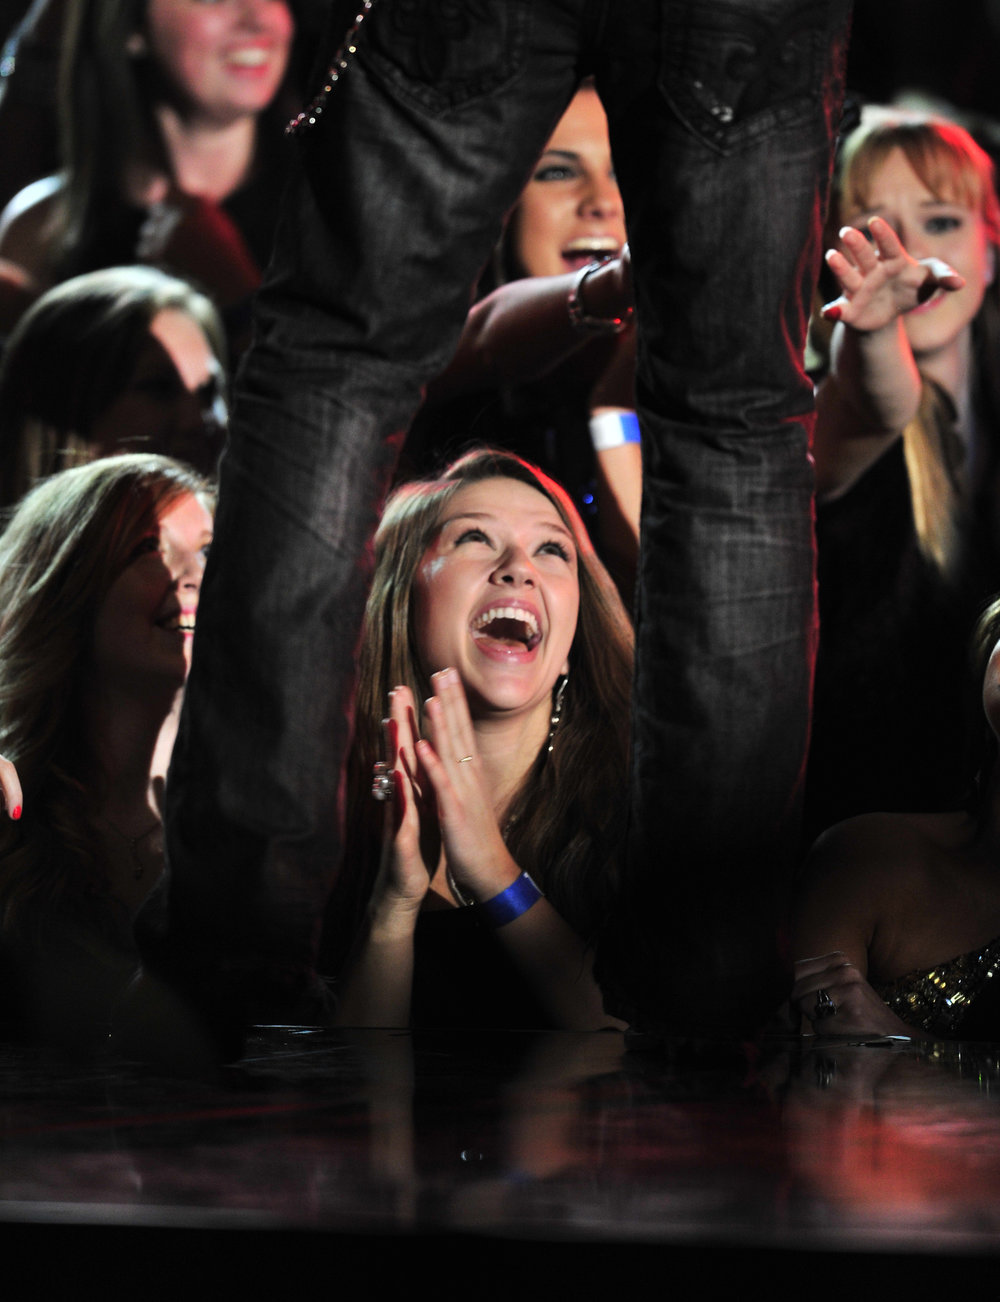 Fans react at the 46th Annual CMA Awards Thursday, Nov. 1, 2012 in Nashville, Tenn.